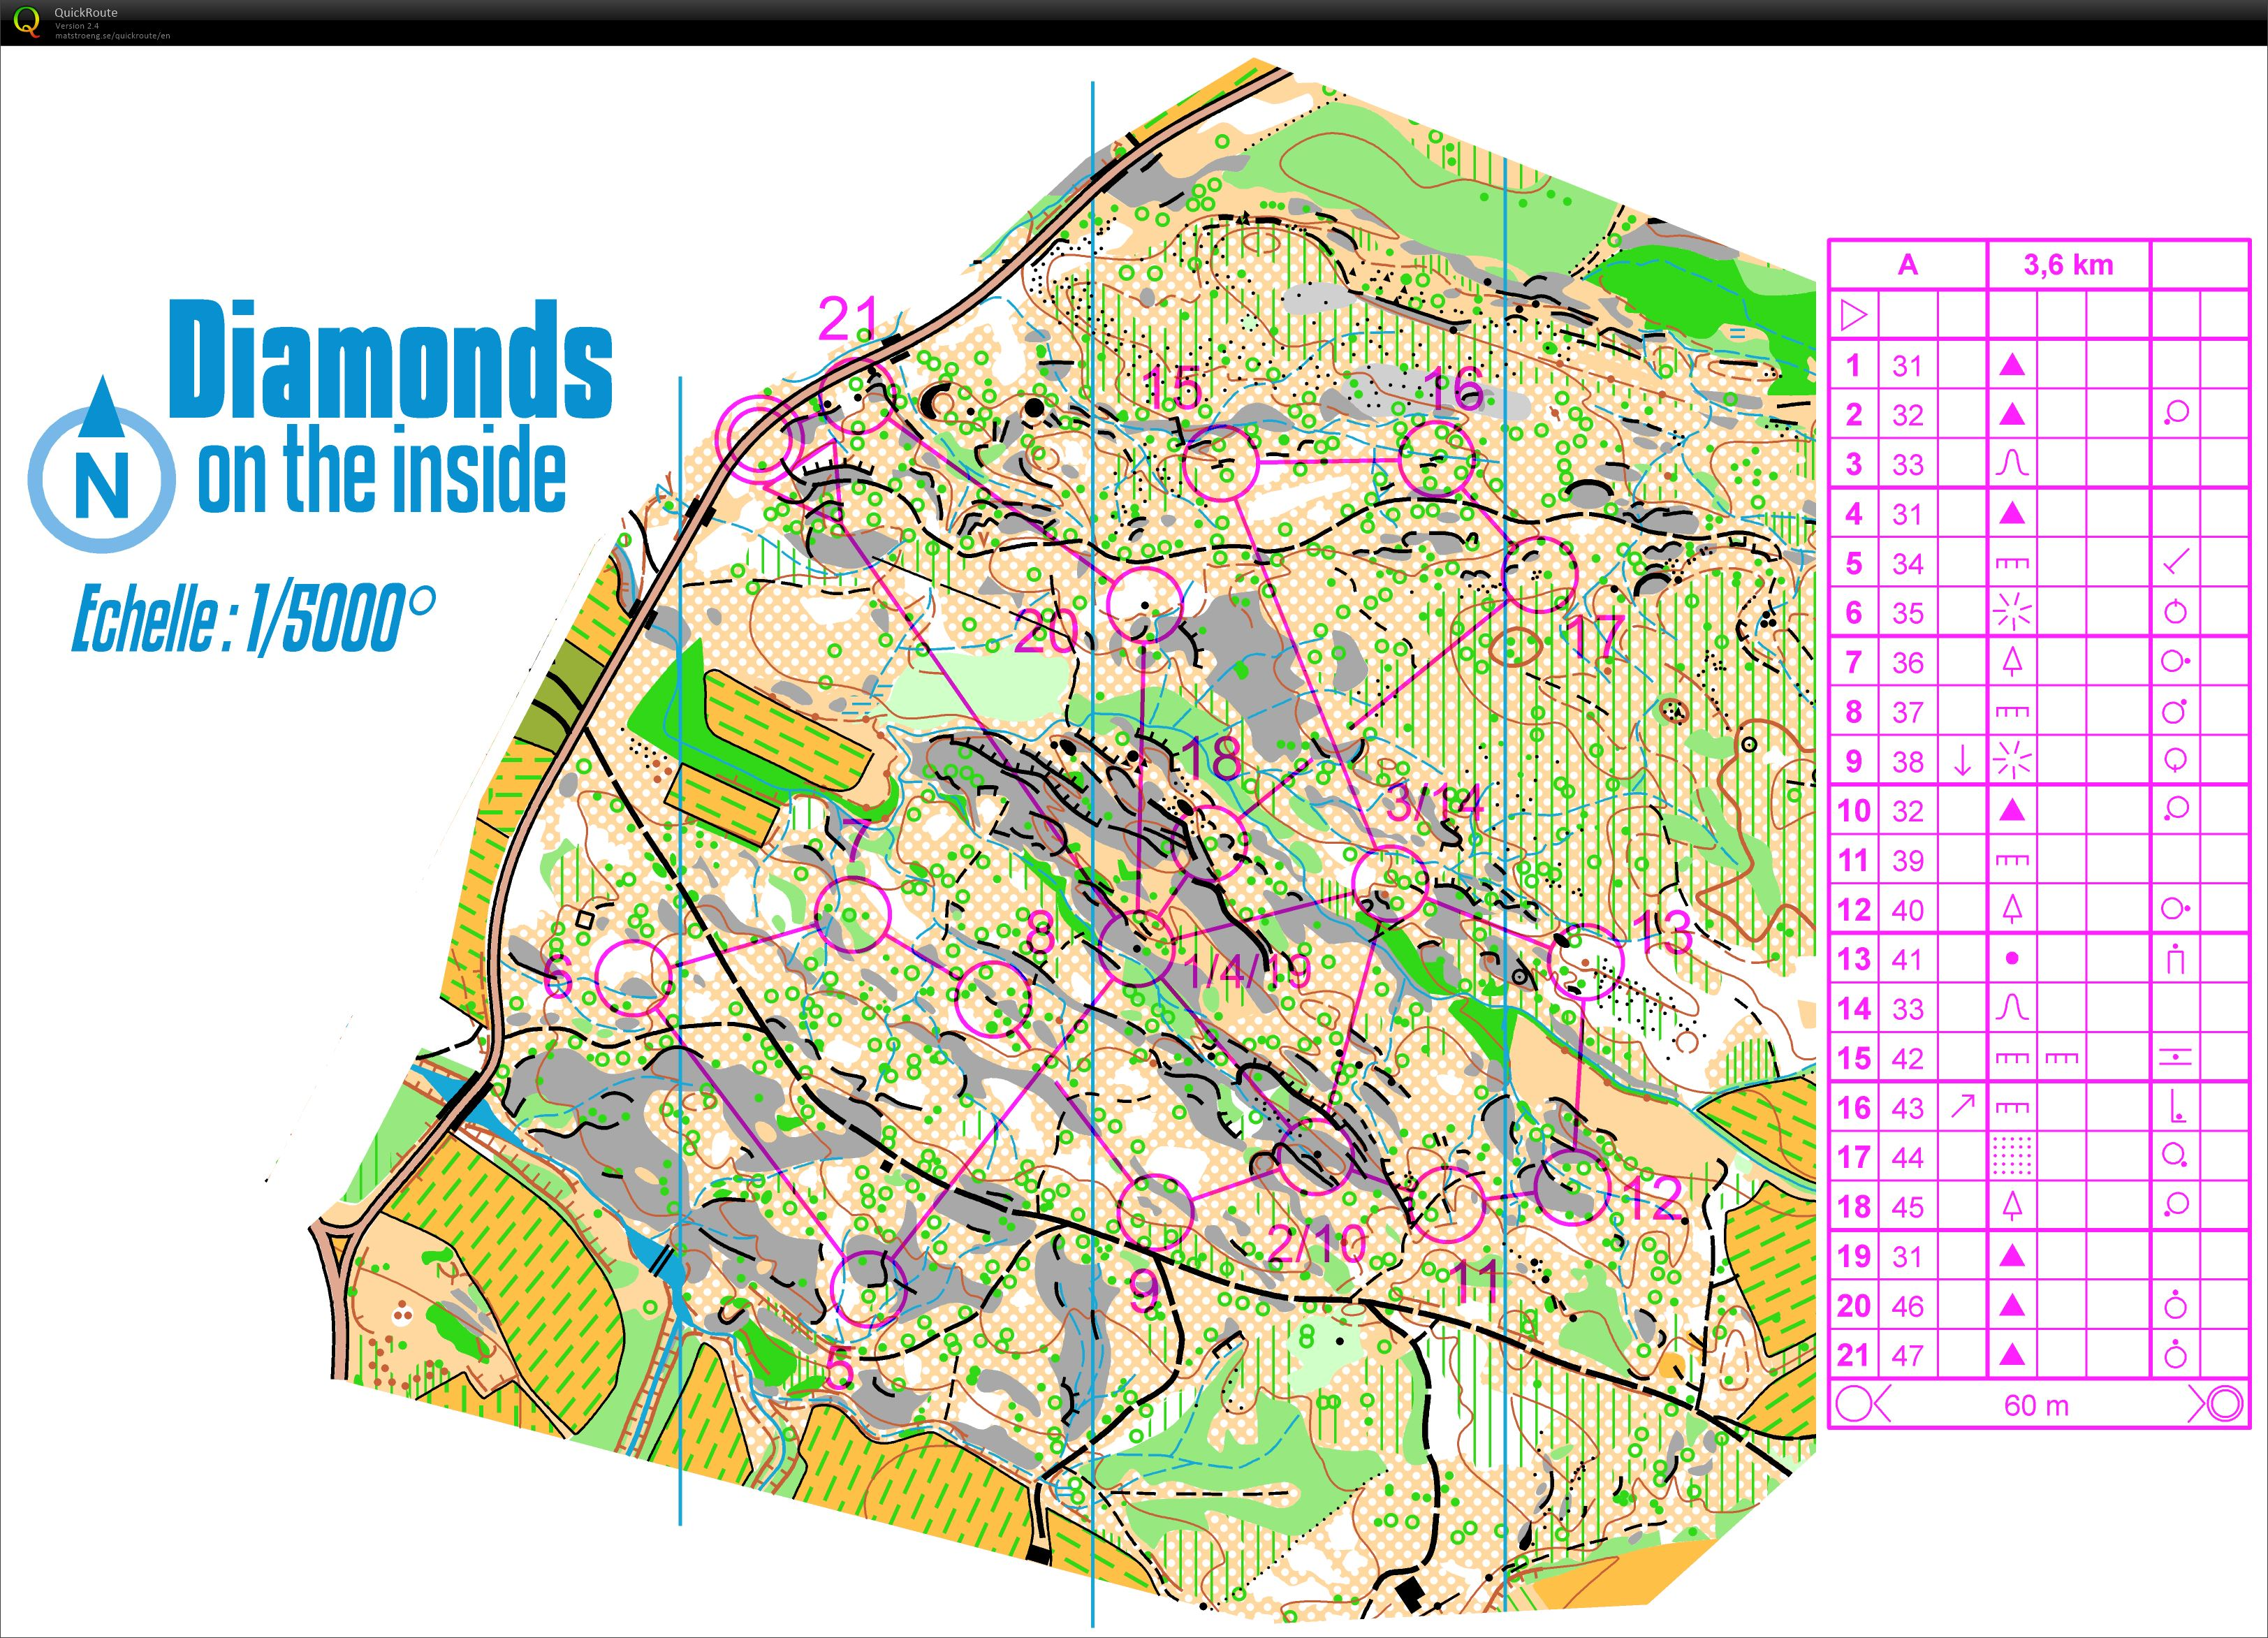 Diamond-Tremo.A (15/01/2017)